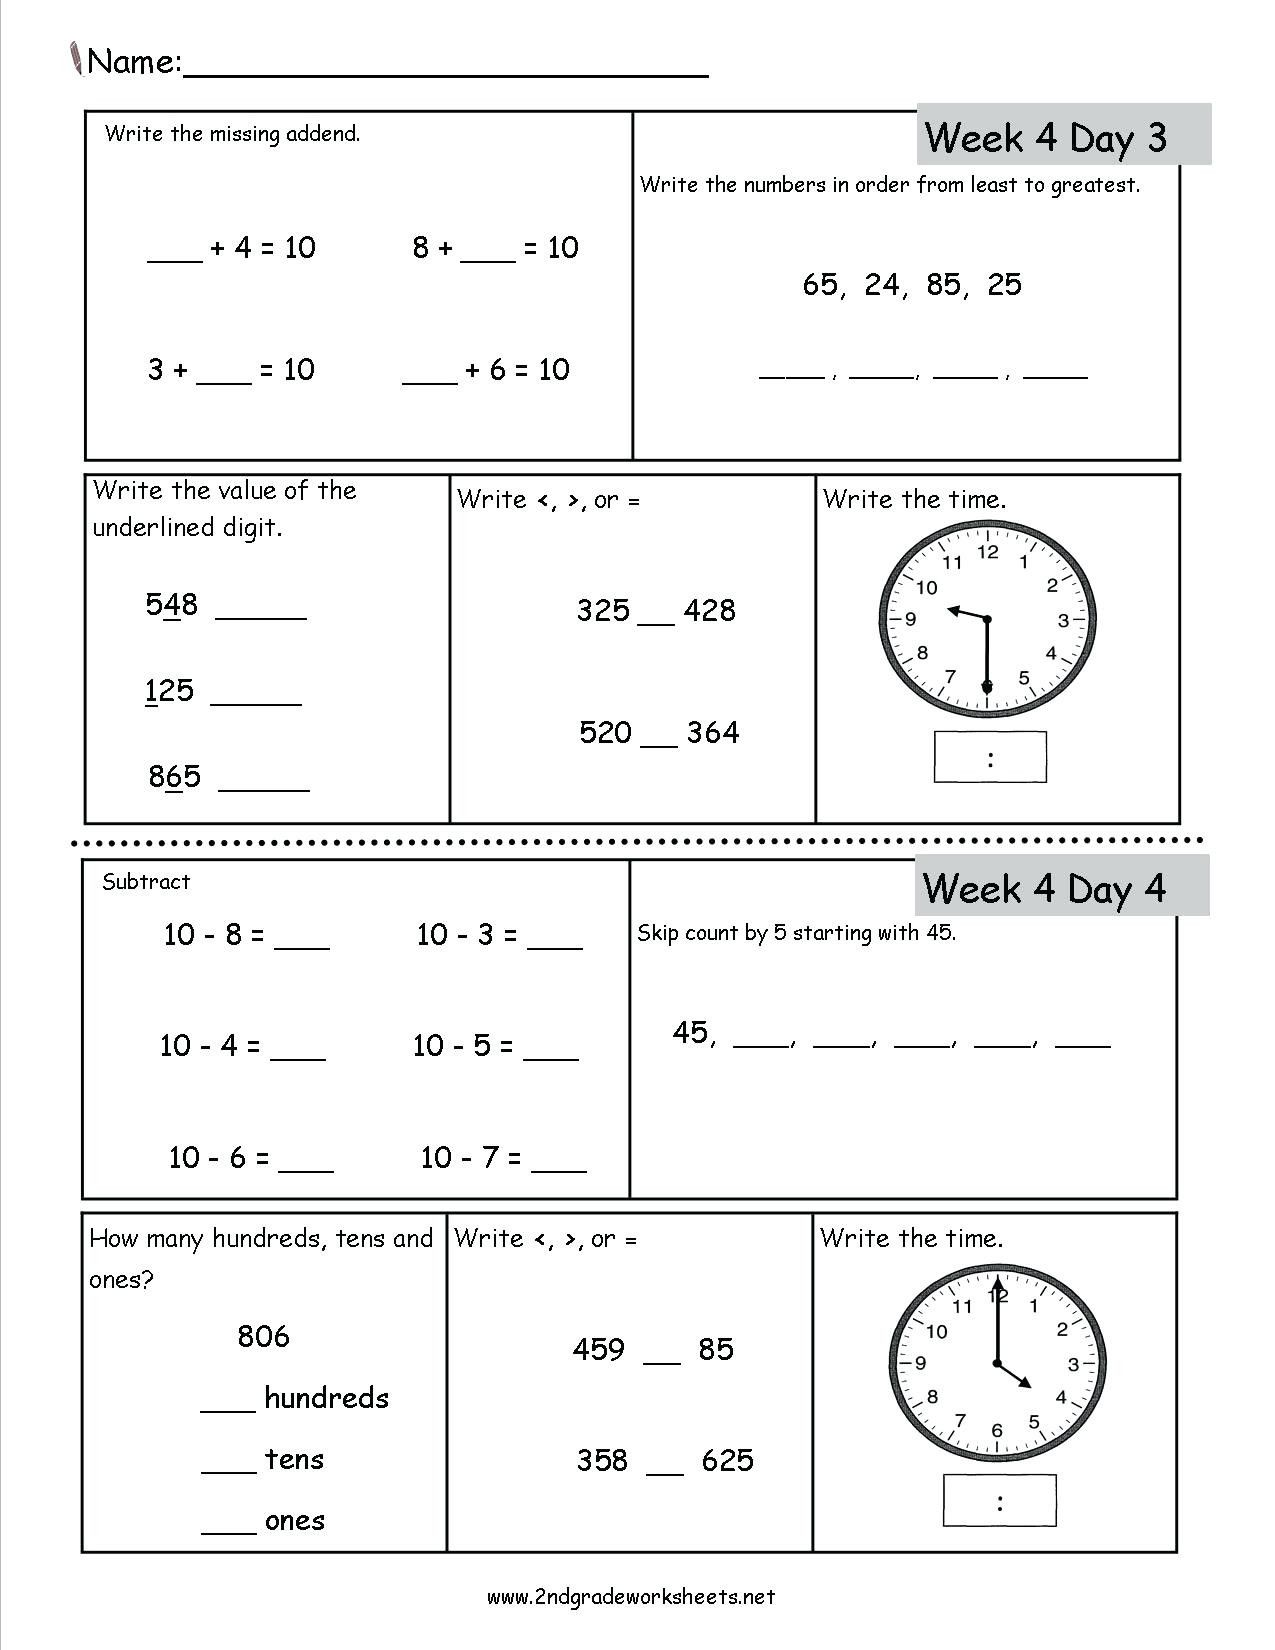 4 Free Math Worksheets Second Grade 2 Subtraction Subtracting 1 Digit From Whole Ten Math Review Worksheets 2nd Grade Math Worksheets 3rd Grade Math Worksheets